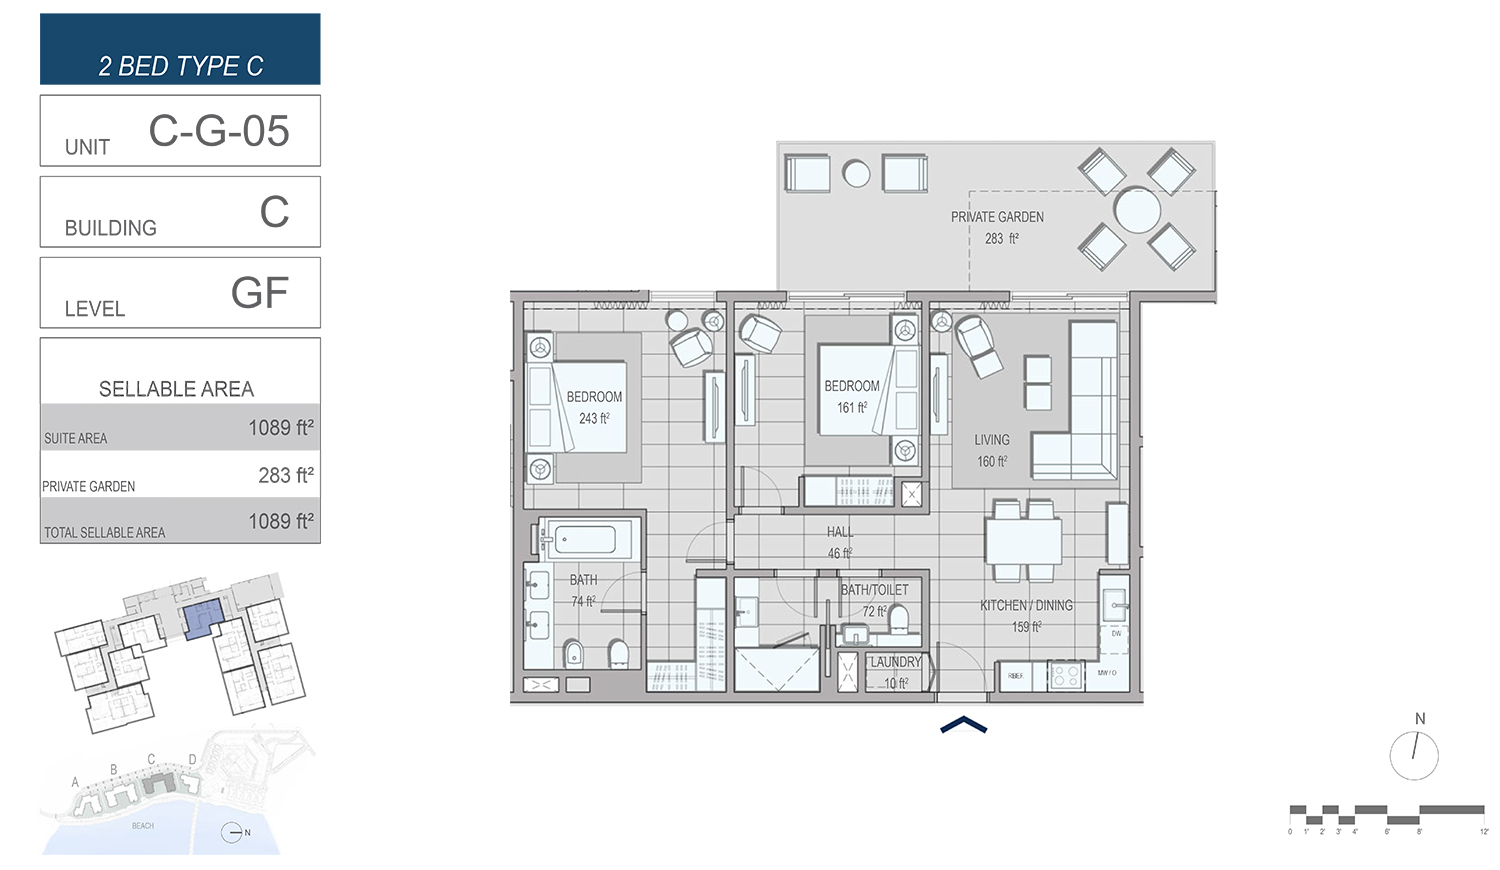 2 Bedroom Type C , Unit C-G-05, Building-C, Level GF, Size 1089 sq.ft.